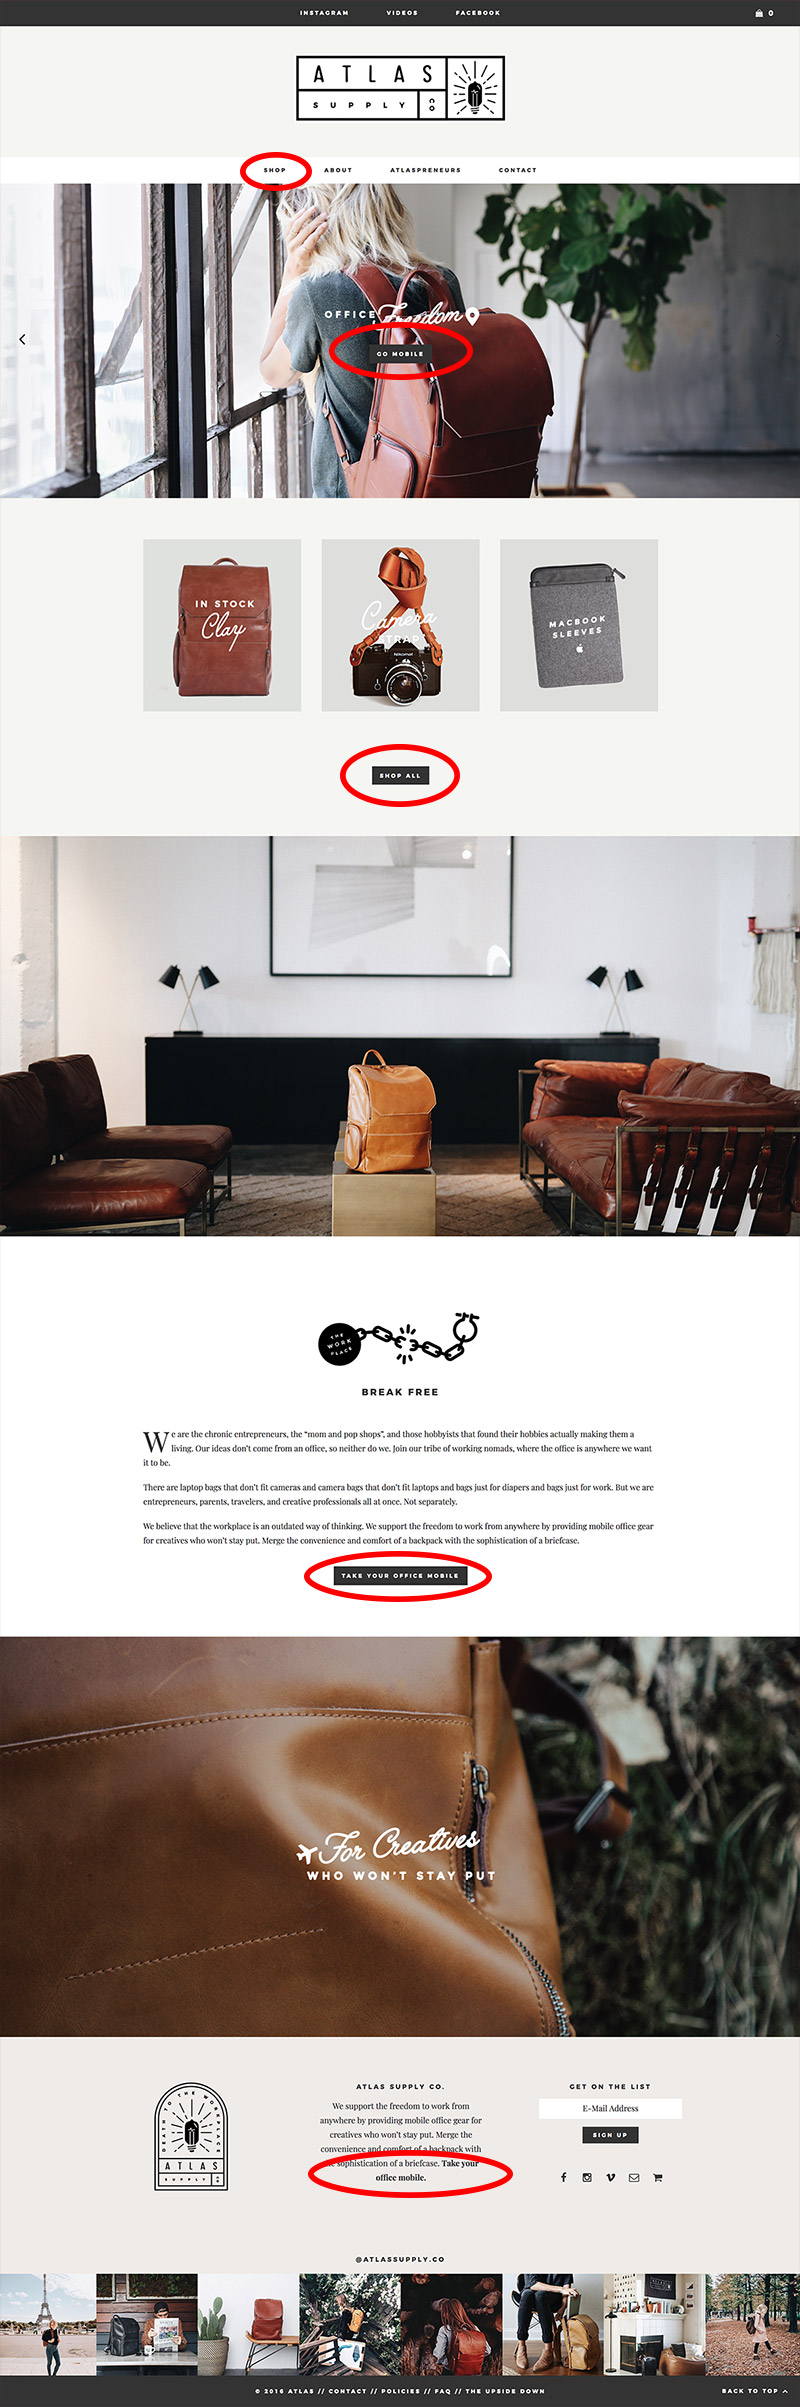 atlas supply company website layout